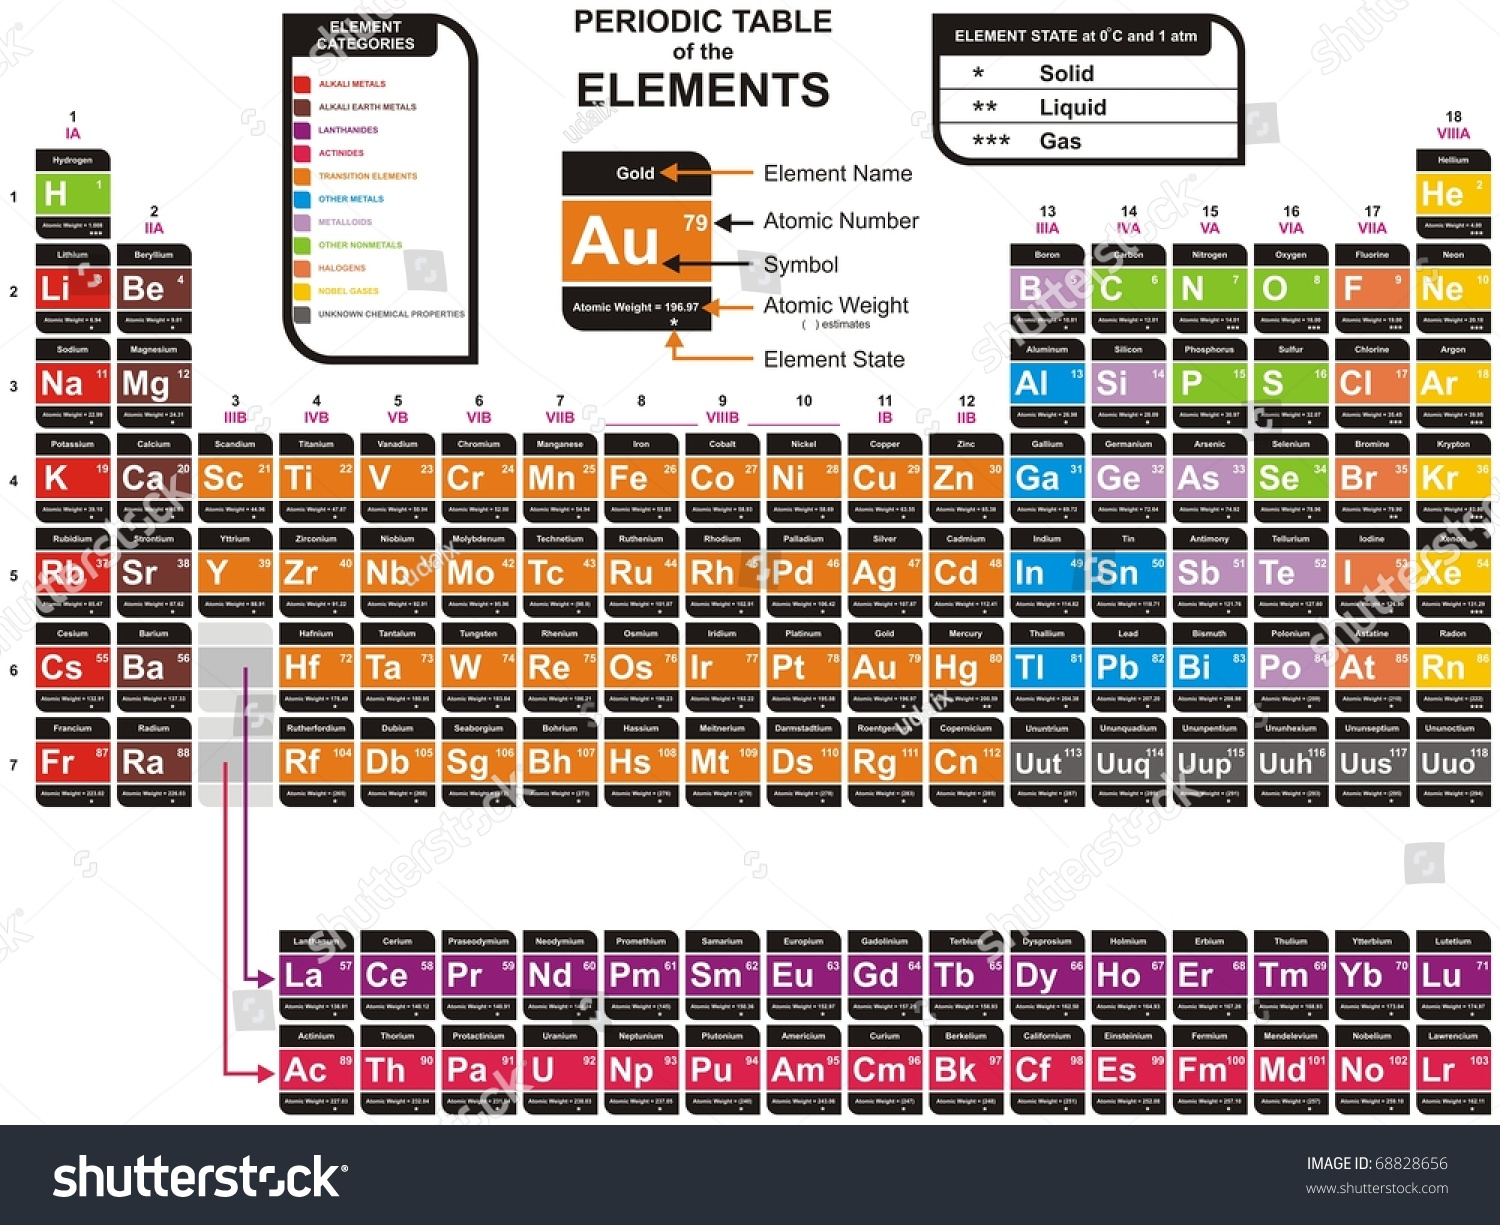 Royalty free colorful complete periodic table of the 68828656 colorful complete periodic table of the chemical elements including element name atomic number atomic weight element symbol also element categories urtaz Choice Image